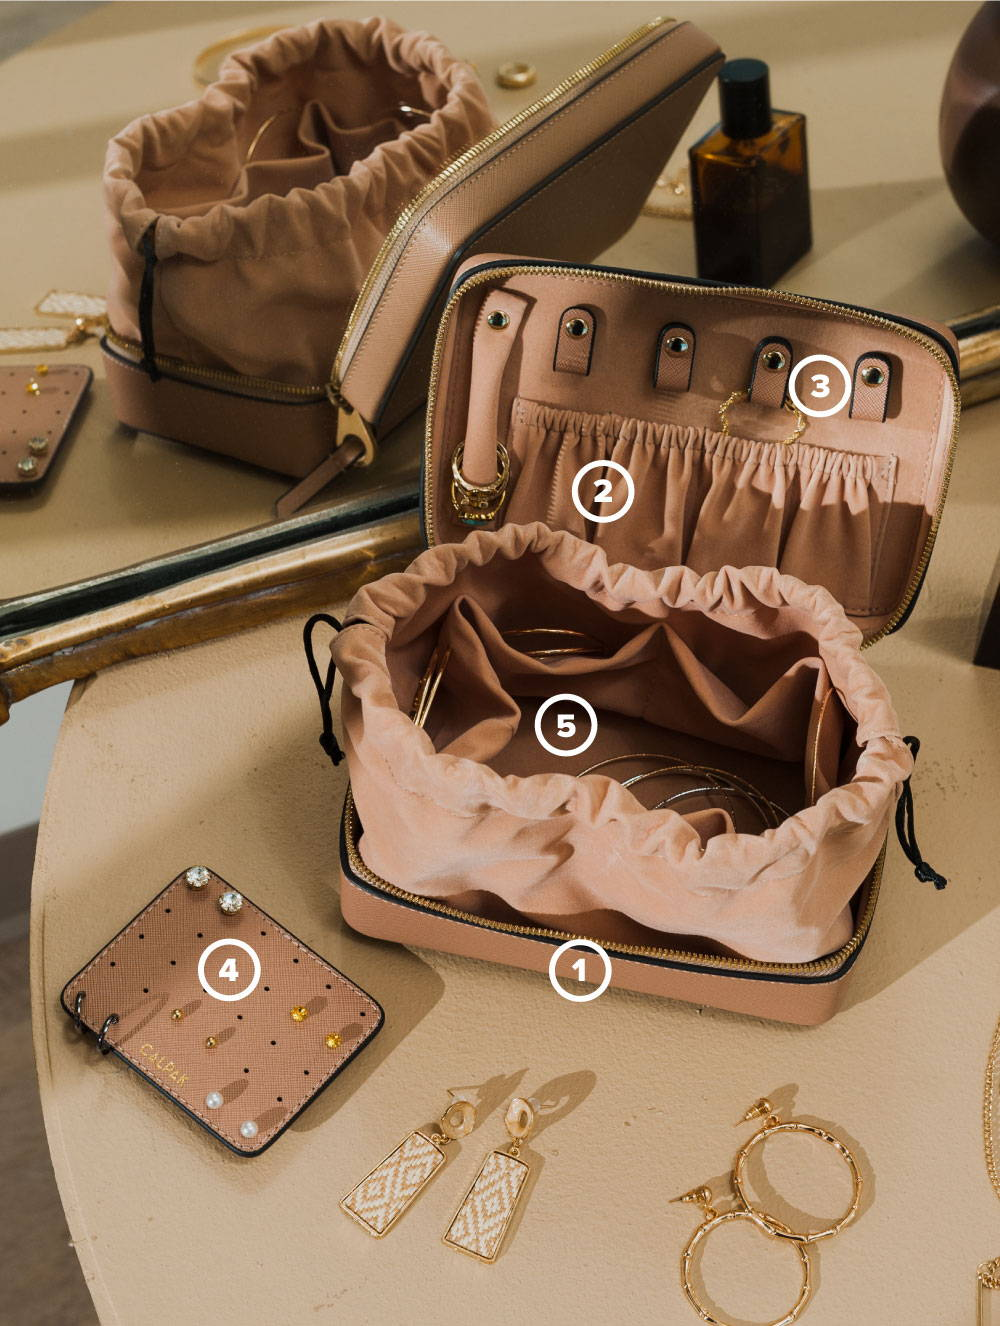 Jewelry Case Infographic showing various features